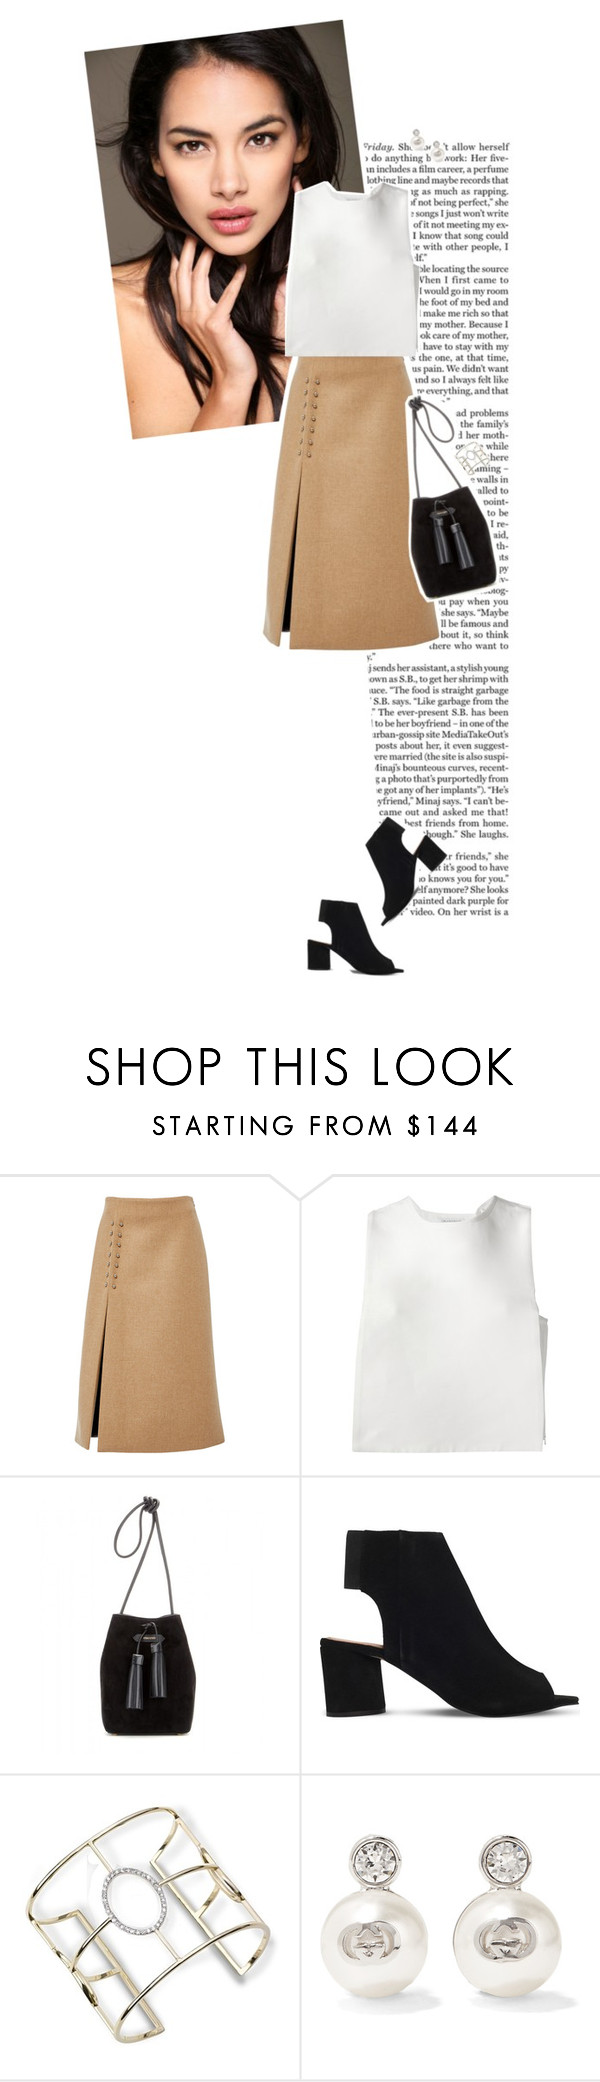 """""""Bucket bag"""" by maya20076 ❤ liked on Polyvore featuring Nicki Minaj, Sally Lapointe, J.W. Anderson, Tom Ford, KG Kurt Geiger and Gucci"""